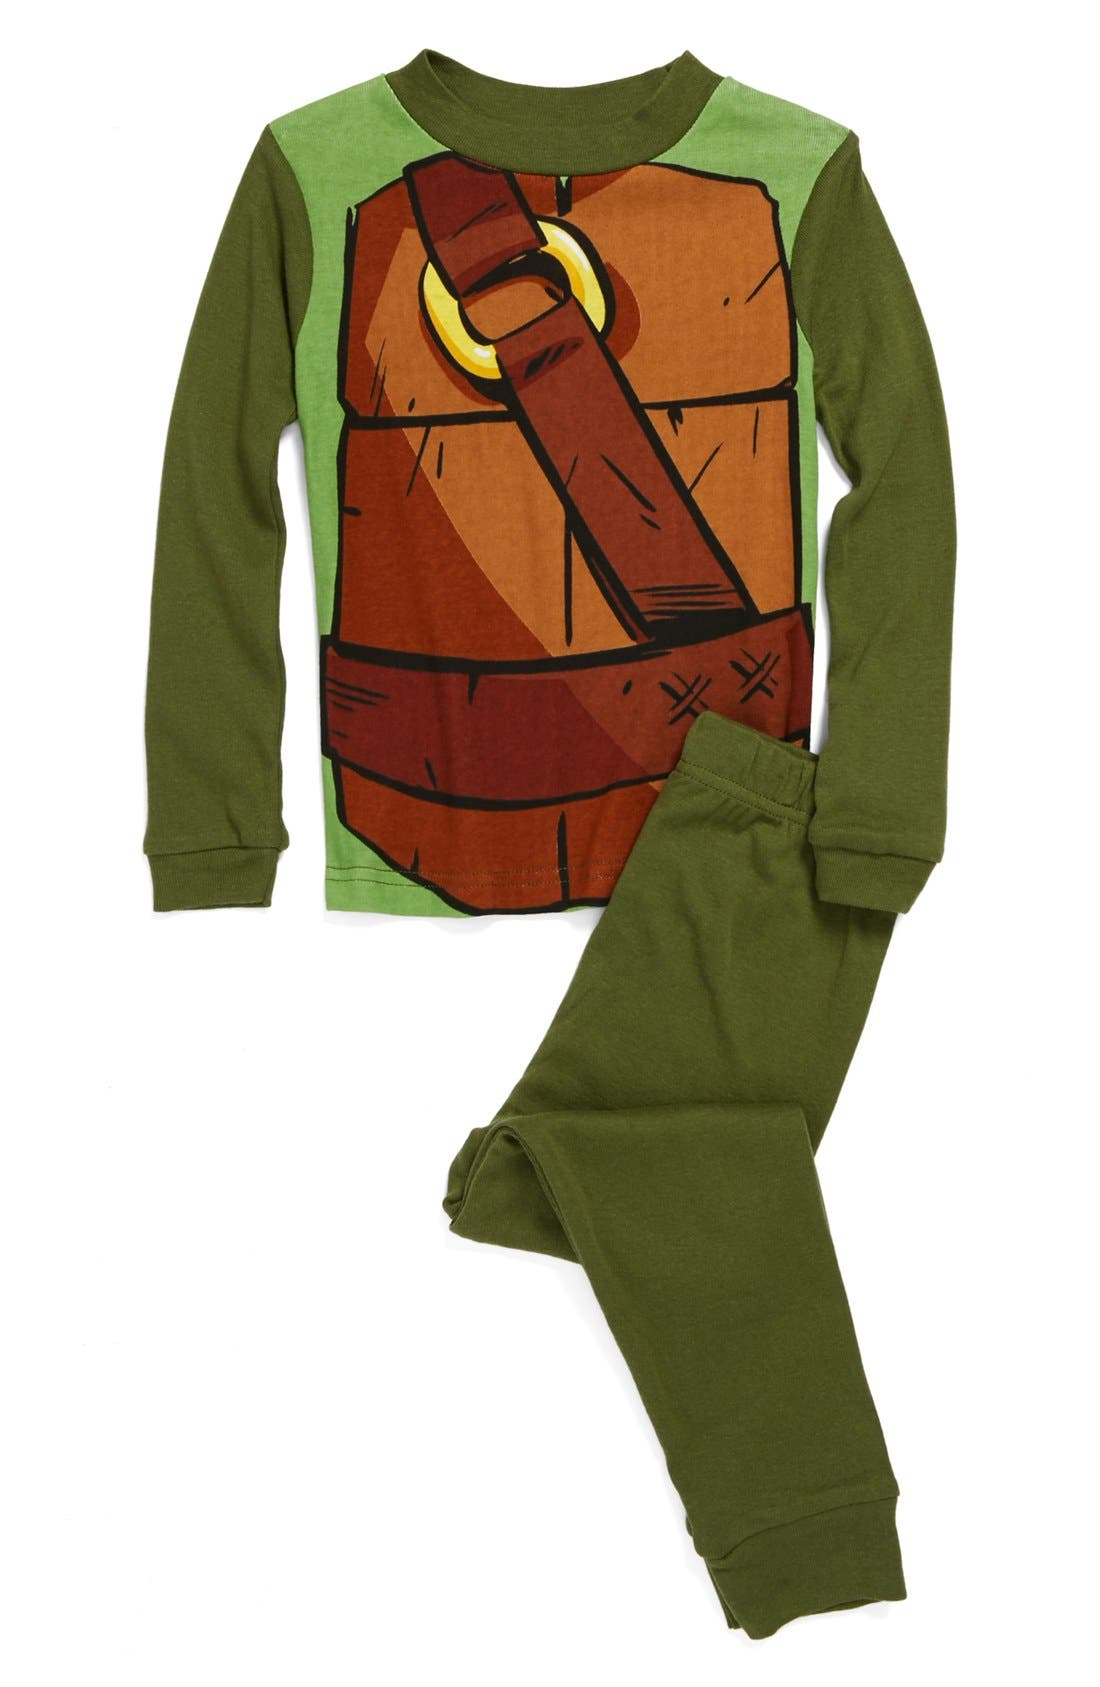 Alternate Image 1 Selected - Nickelodeon 'Turtle' Fitted Two-Piece Pajamas (Little Boys & Big Boys)